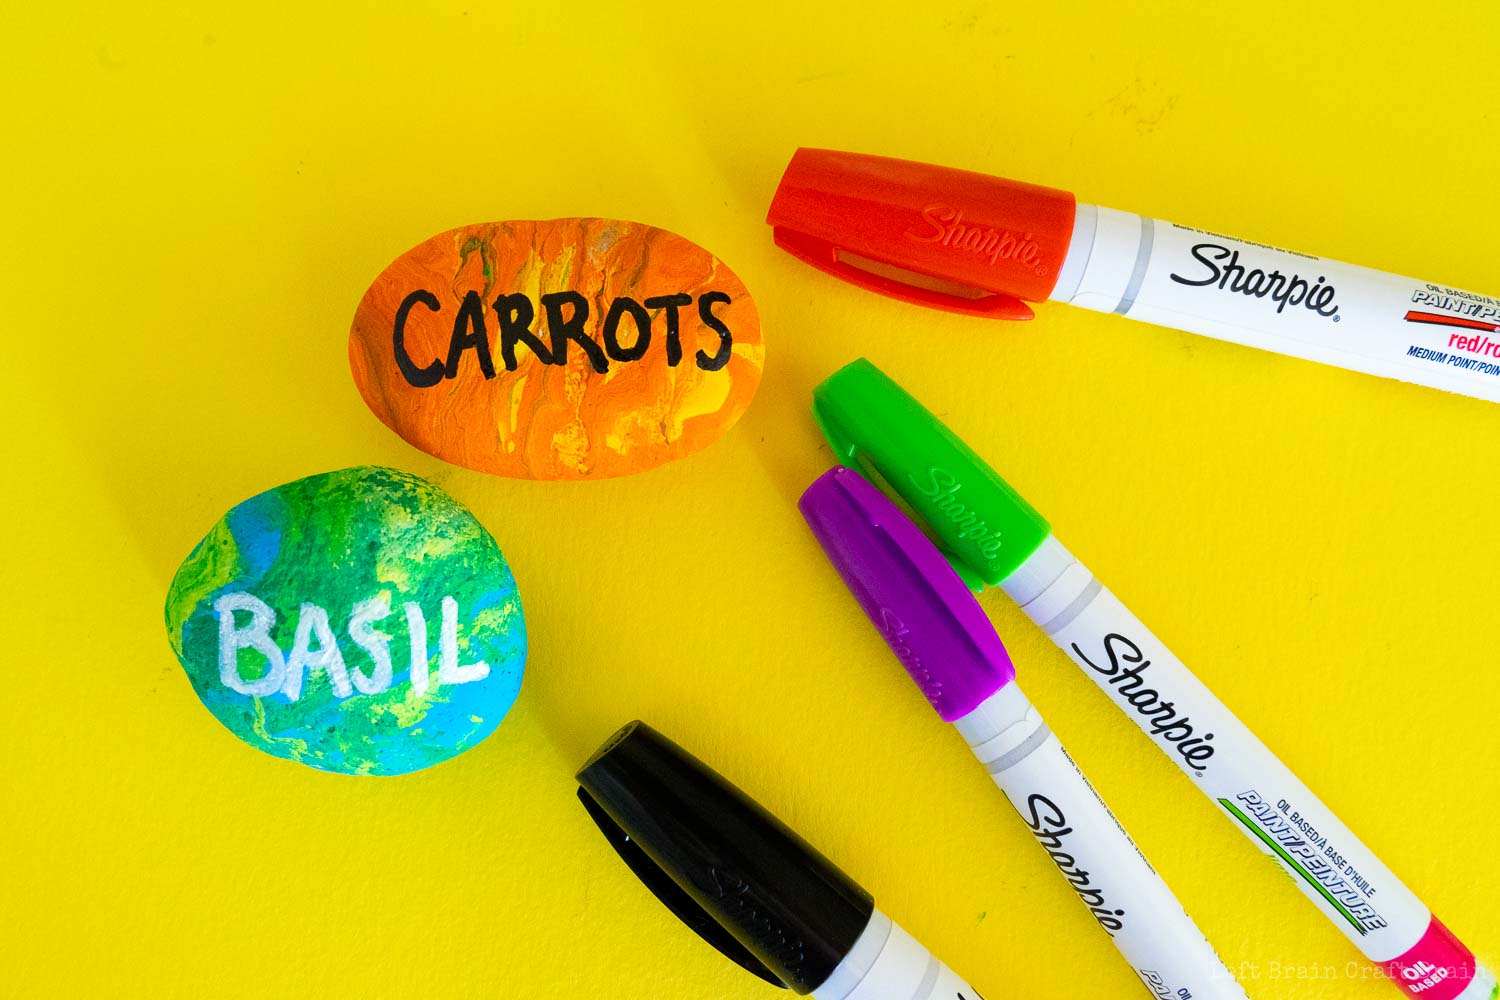 carrots and basil rocks with sharpie paint markers